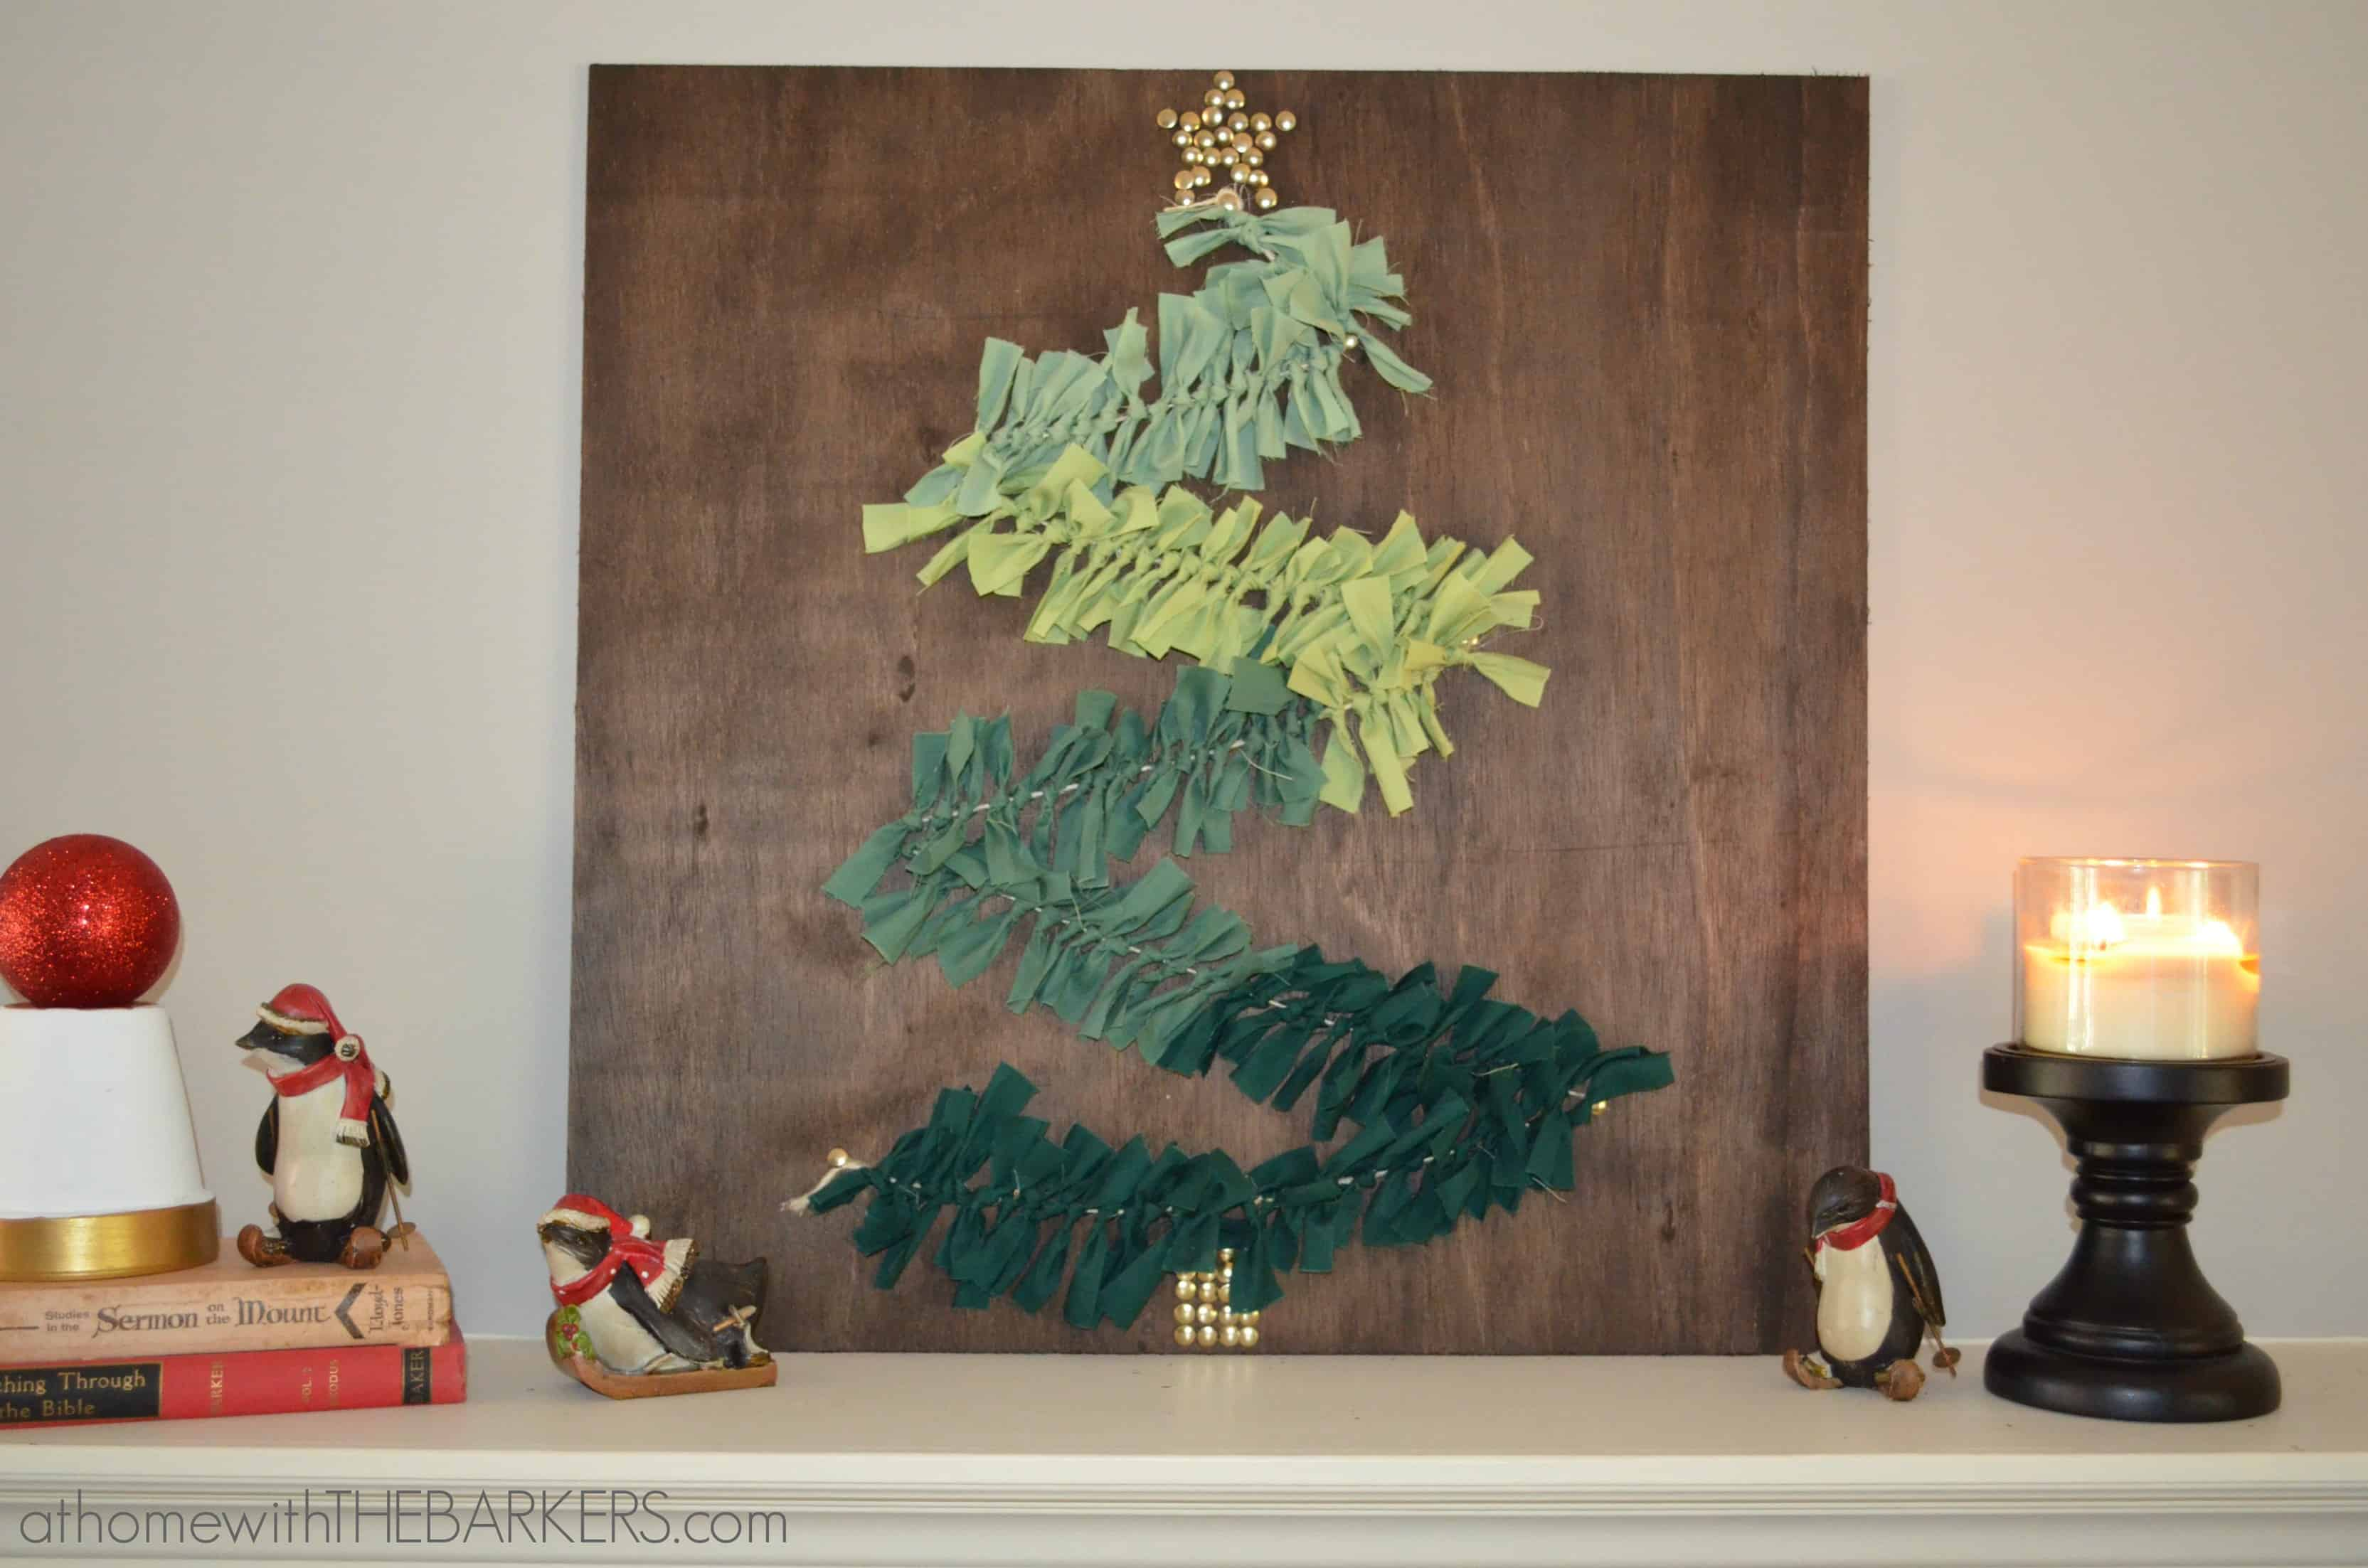 Christmas Wall Decor Images : Diy christmas tree wall art on mantel at home with the